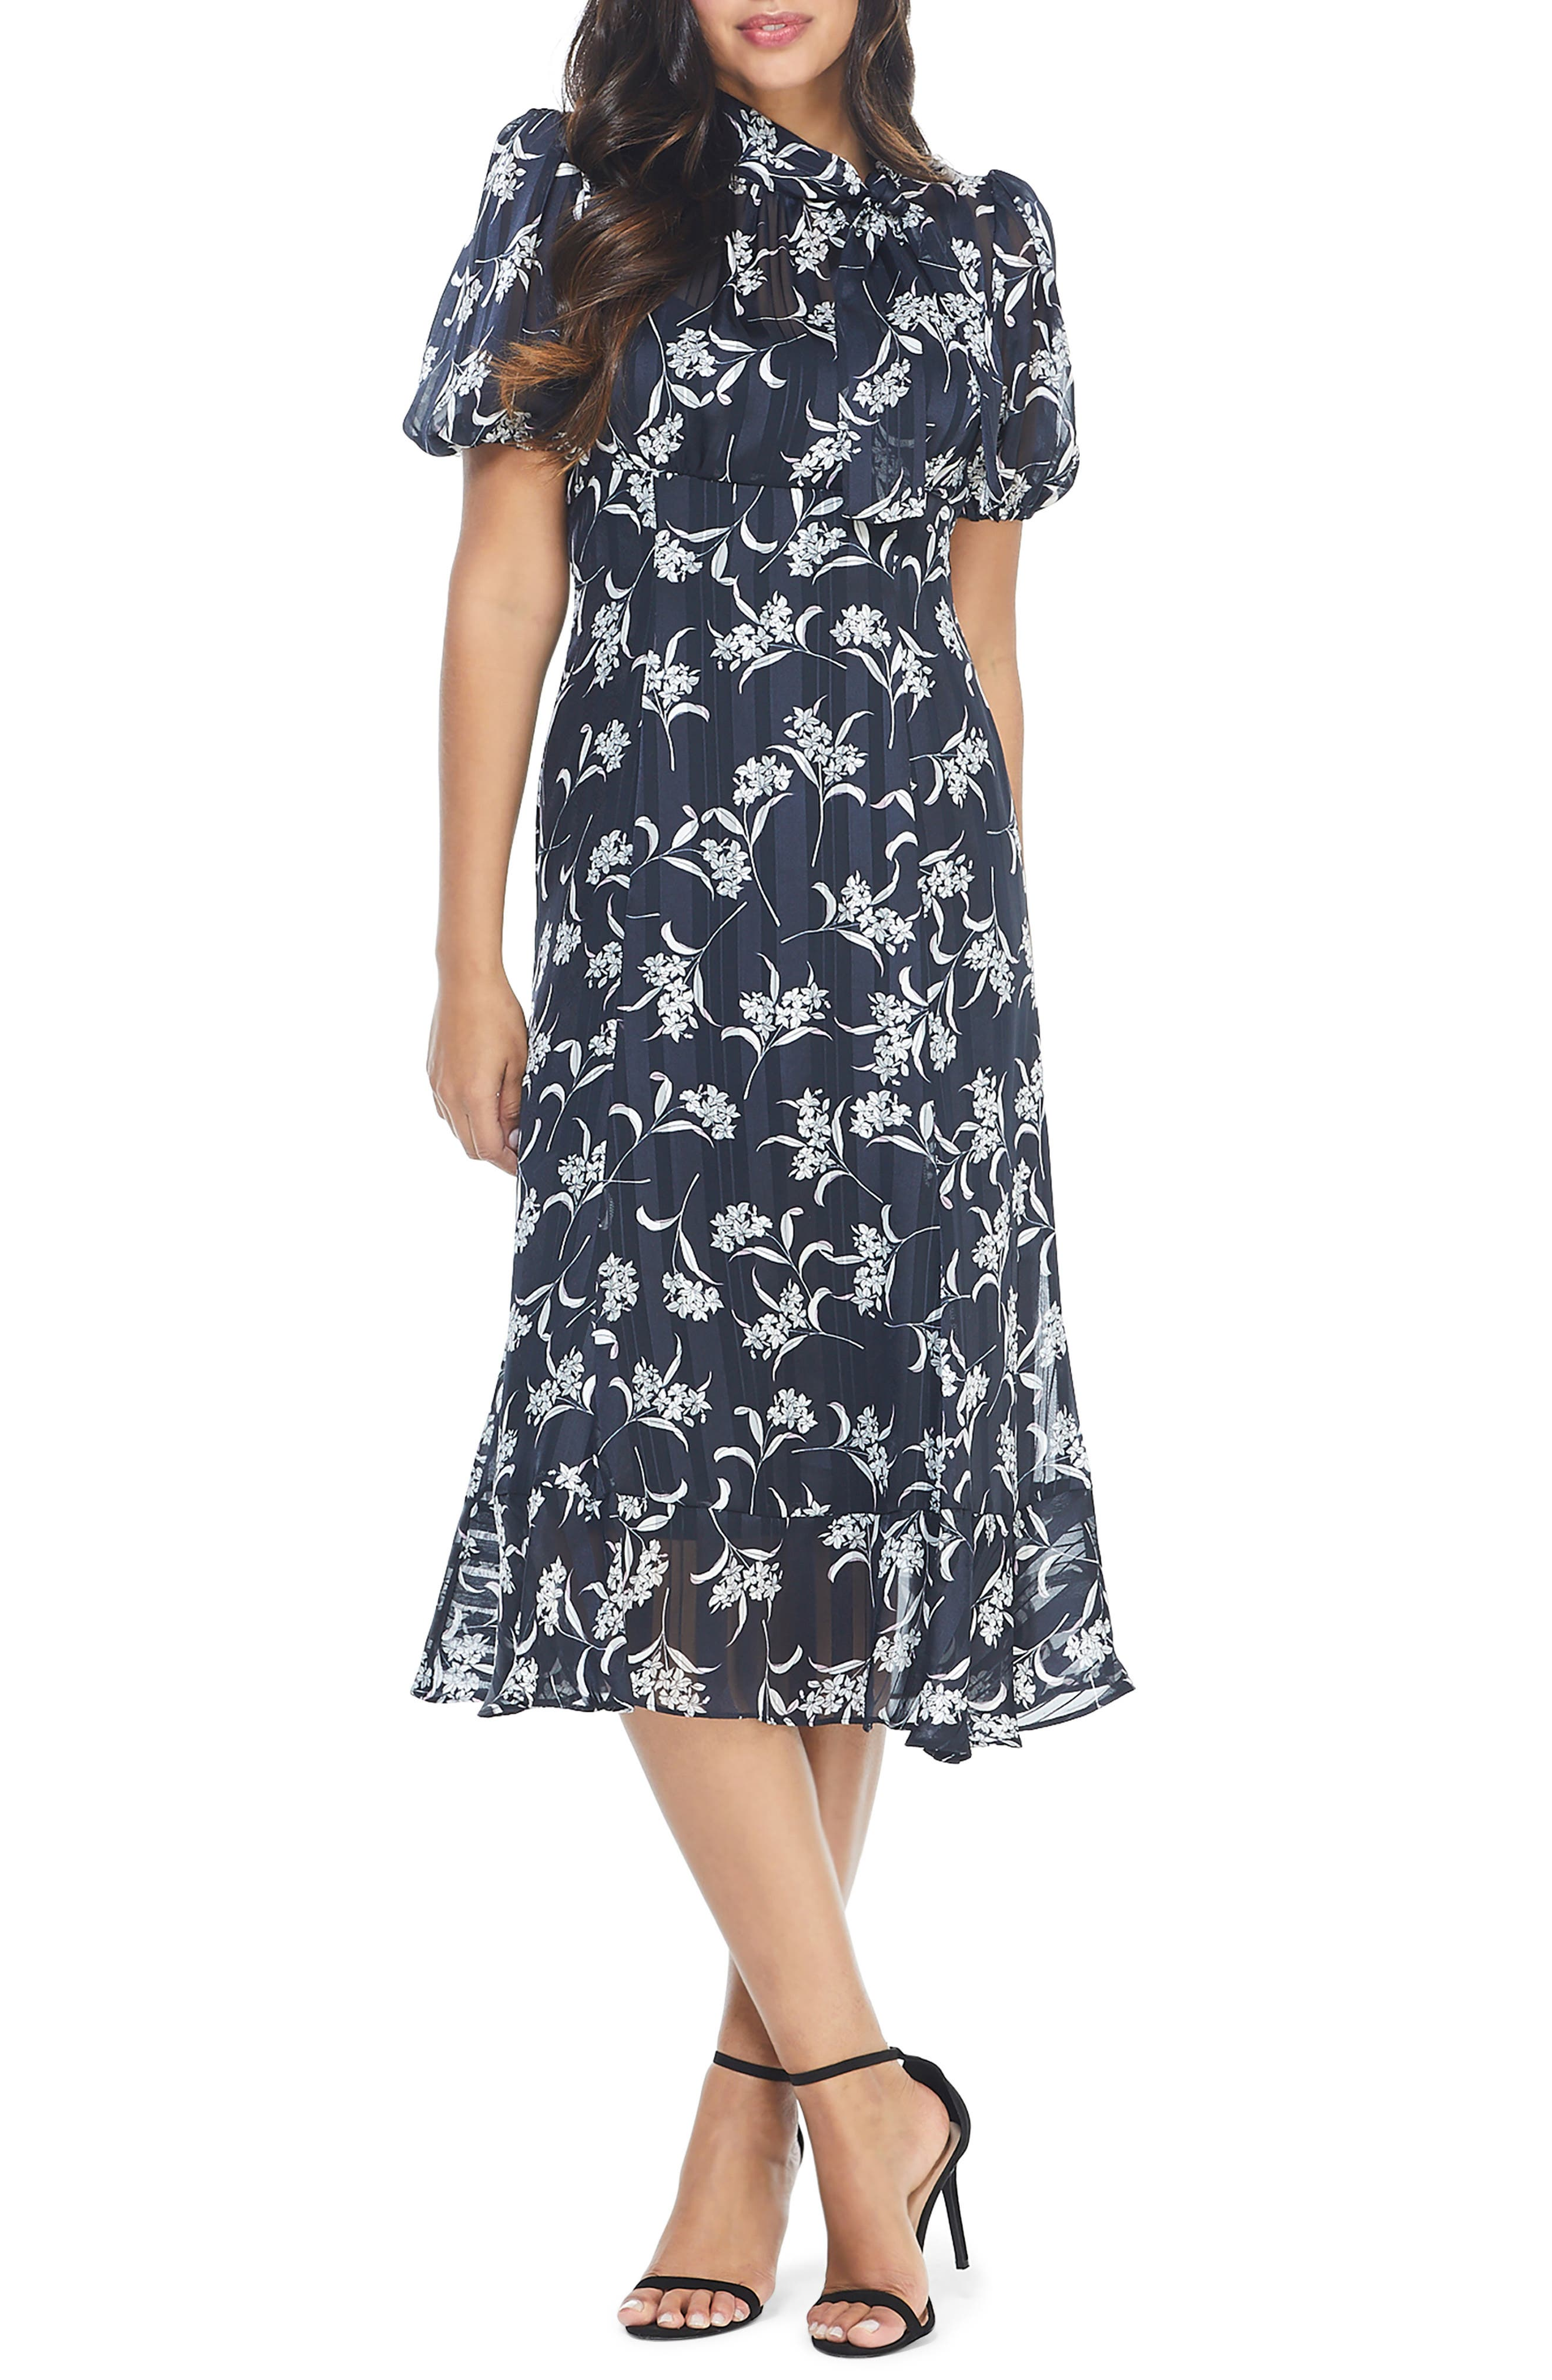 1930s Style Clothing and Fashion Womens Maggy London Adella Floral Satin Stripe Midi Dress Size 10 - Blue $94.80 AT vintagedancer.com